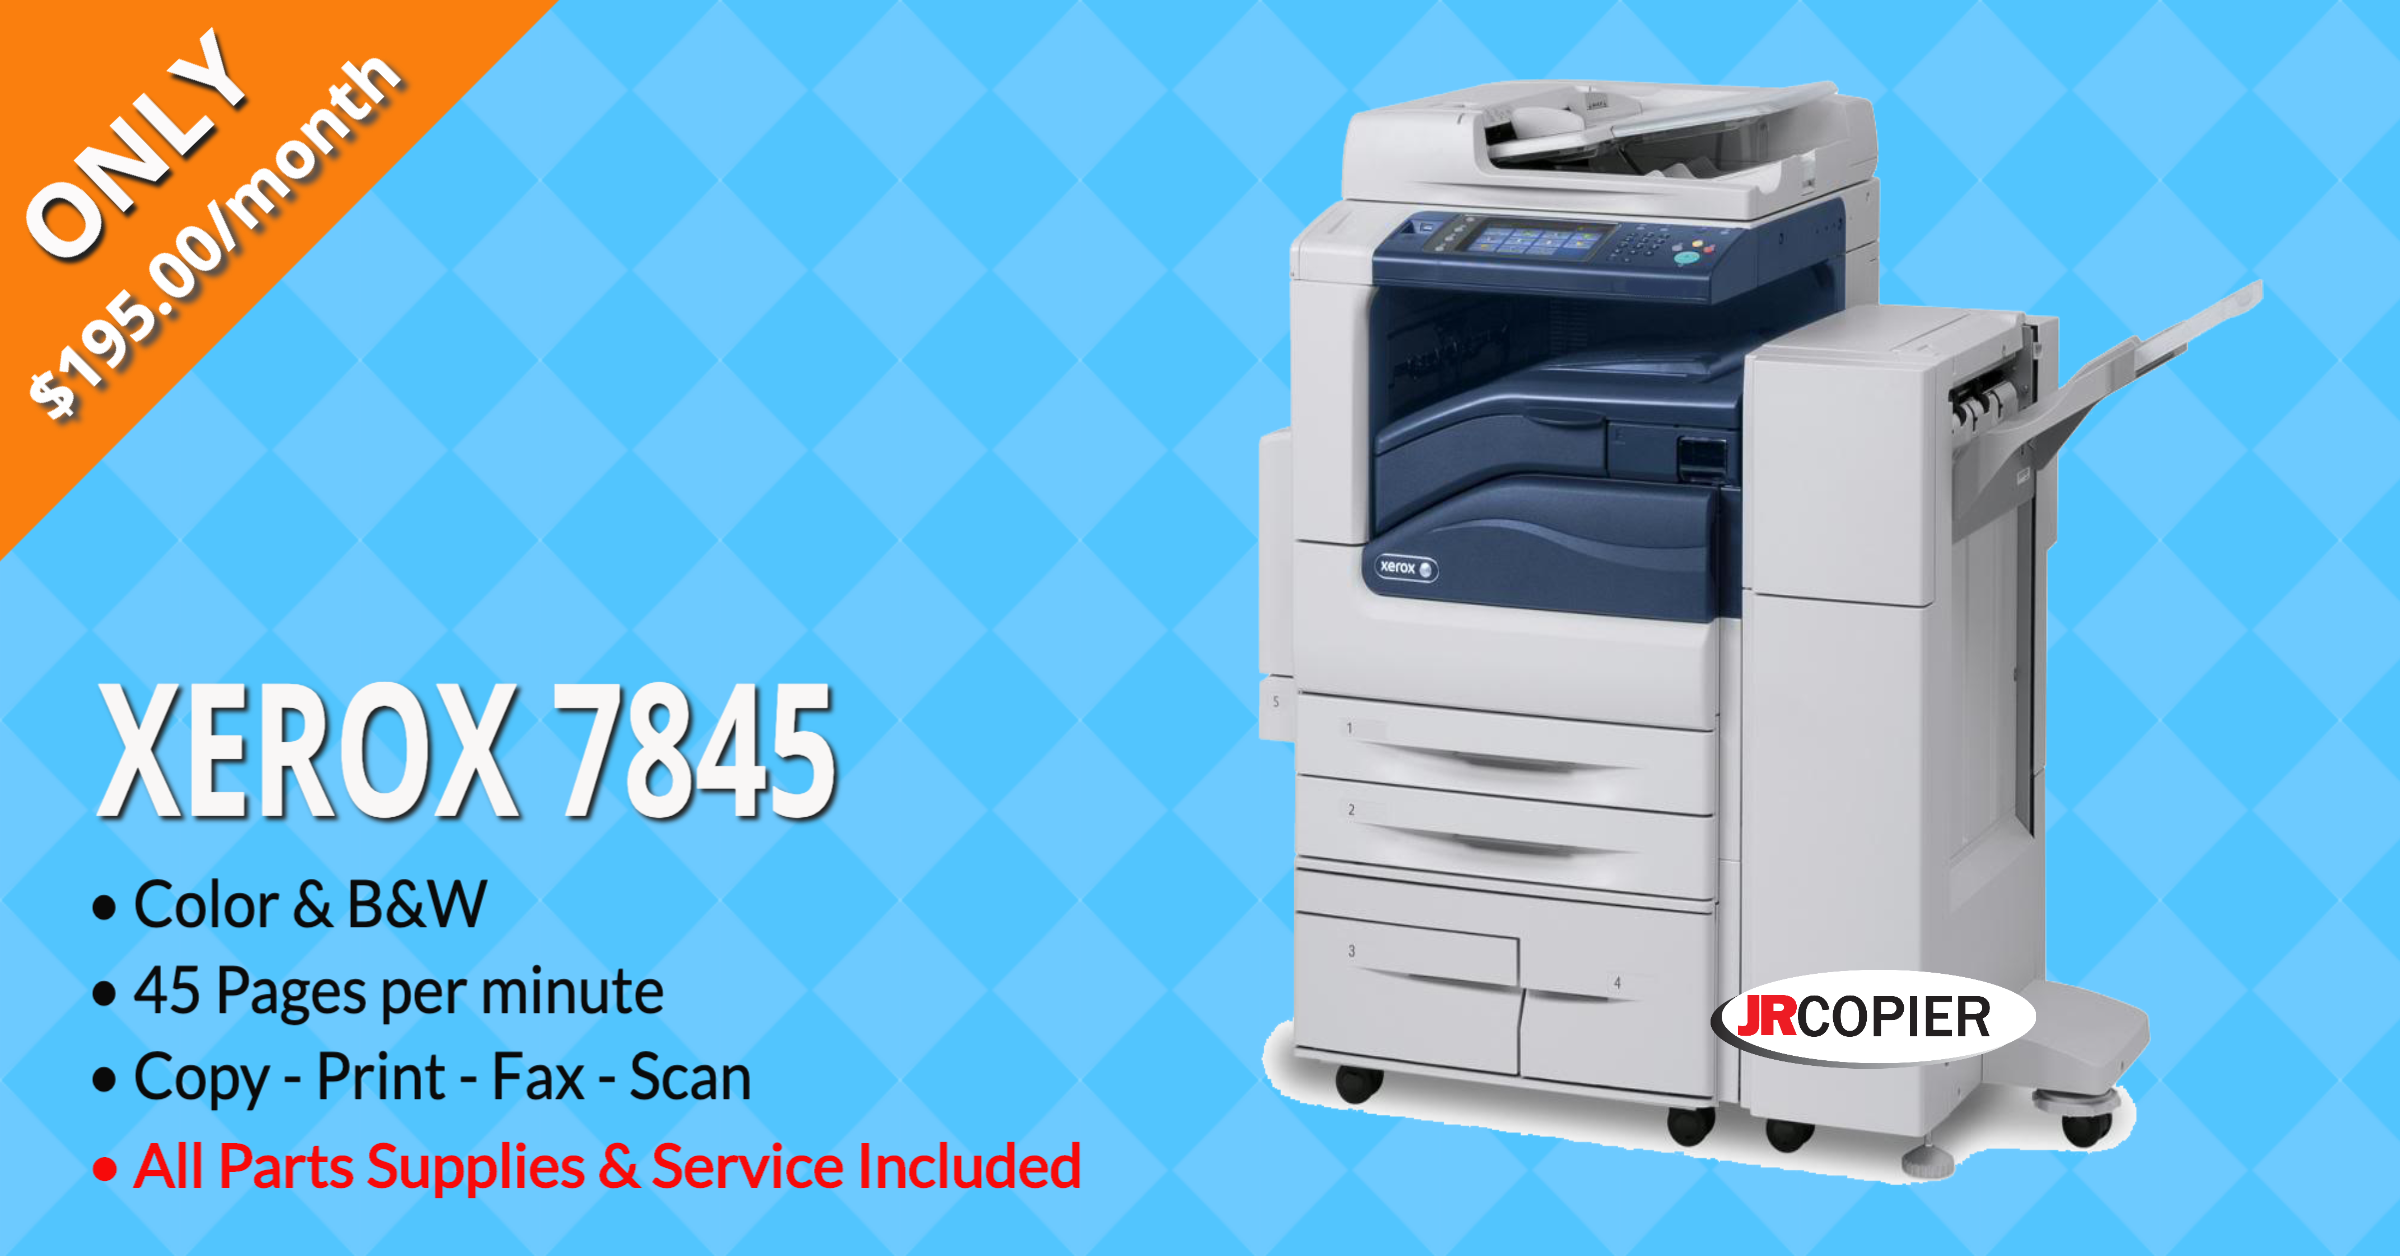 Printer Leasing Company 67147, 67204